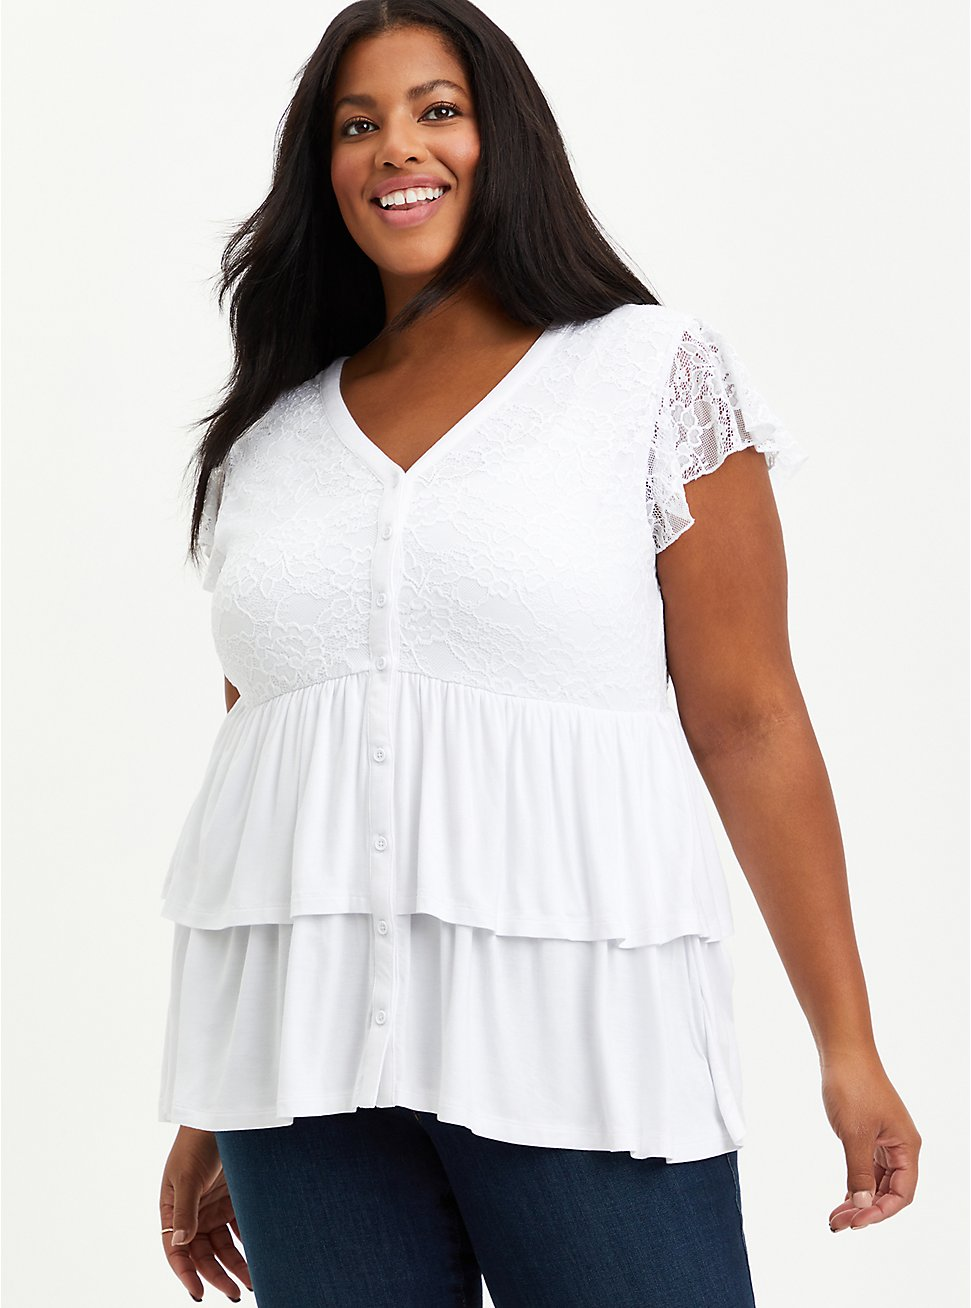 Babydoll Top - Super Soft Lace White, BRIGHT WHITE, hi-res